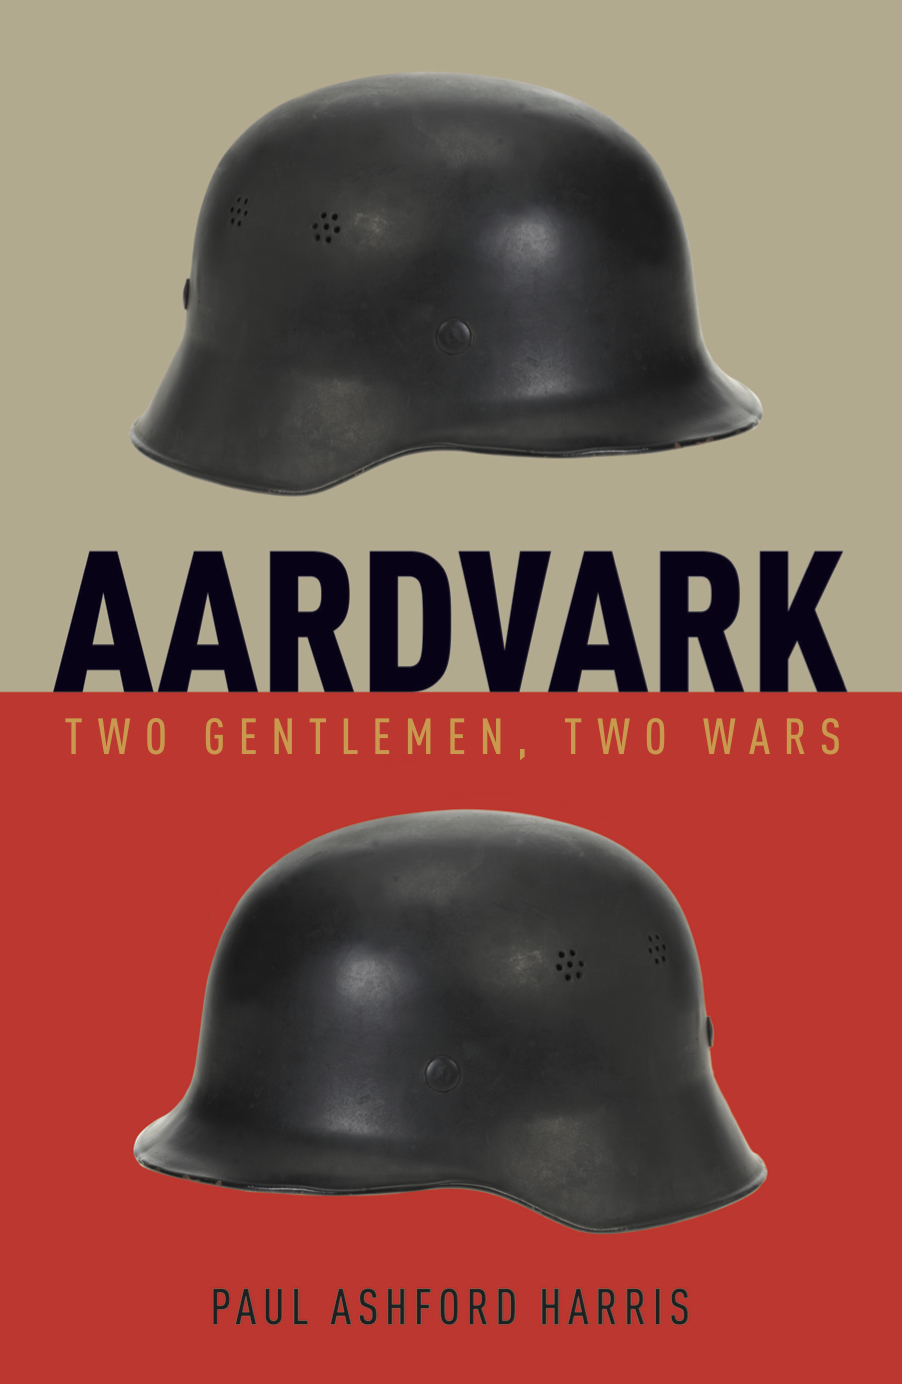 Aardvark_Cover Artwork.jpg